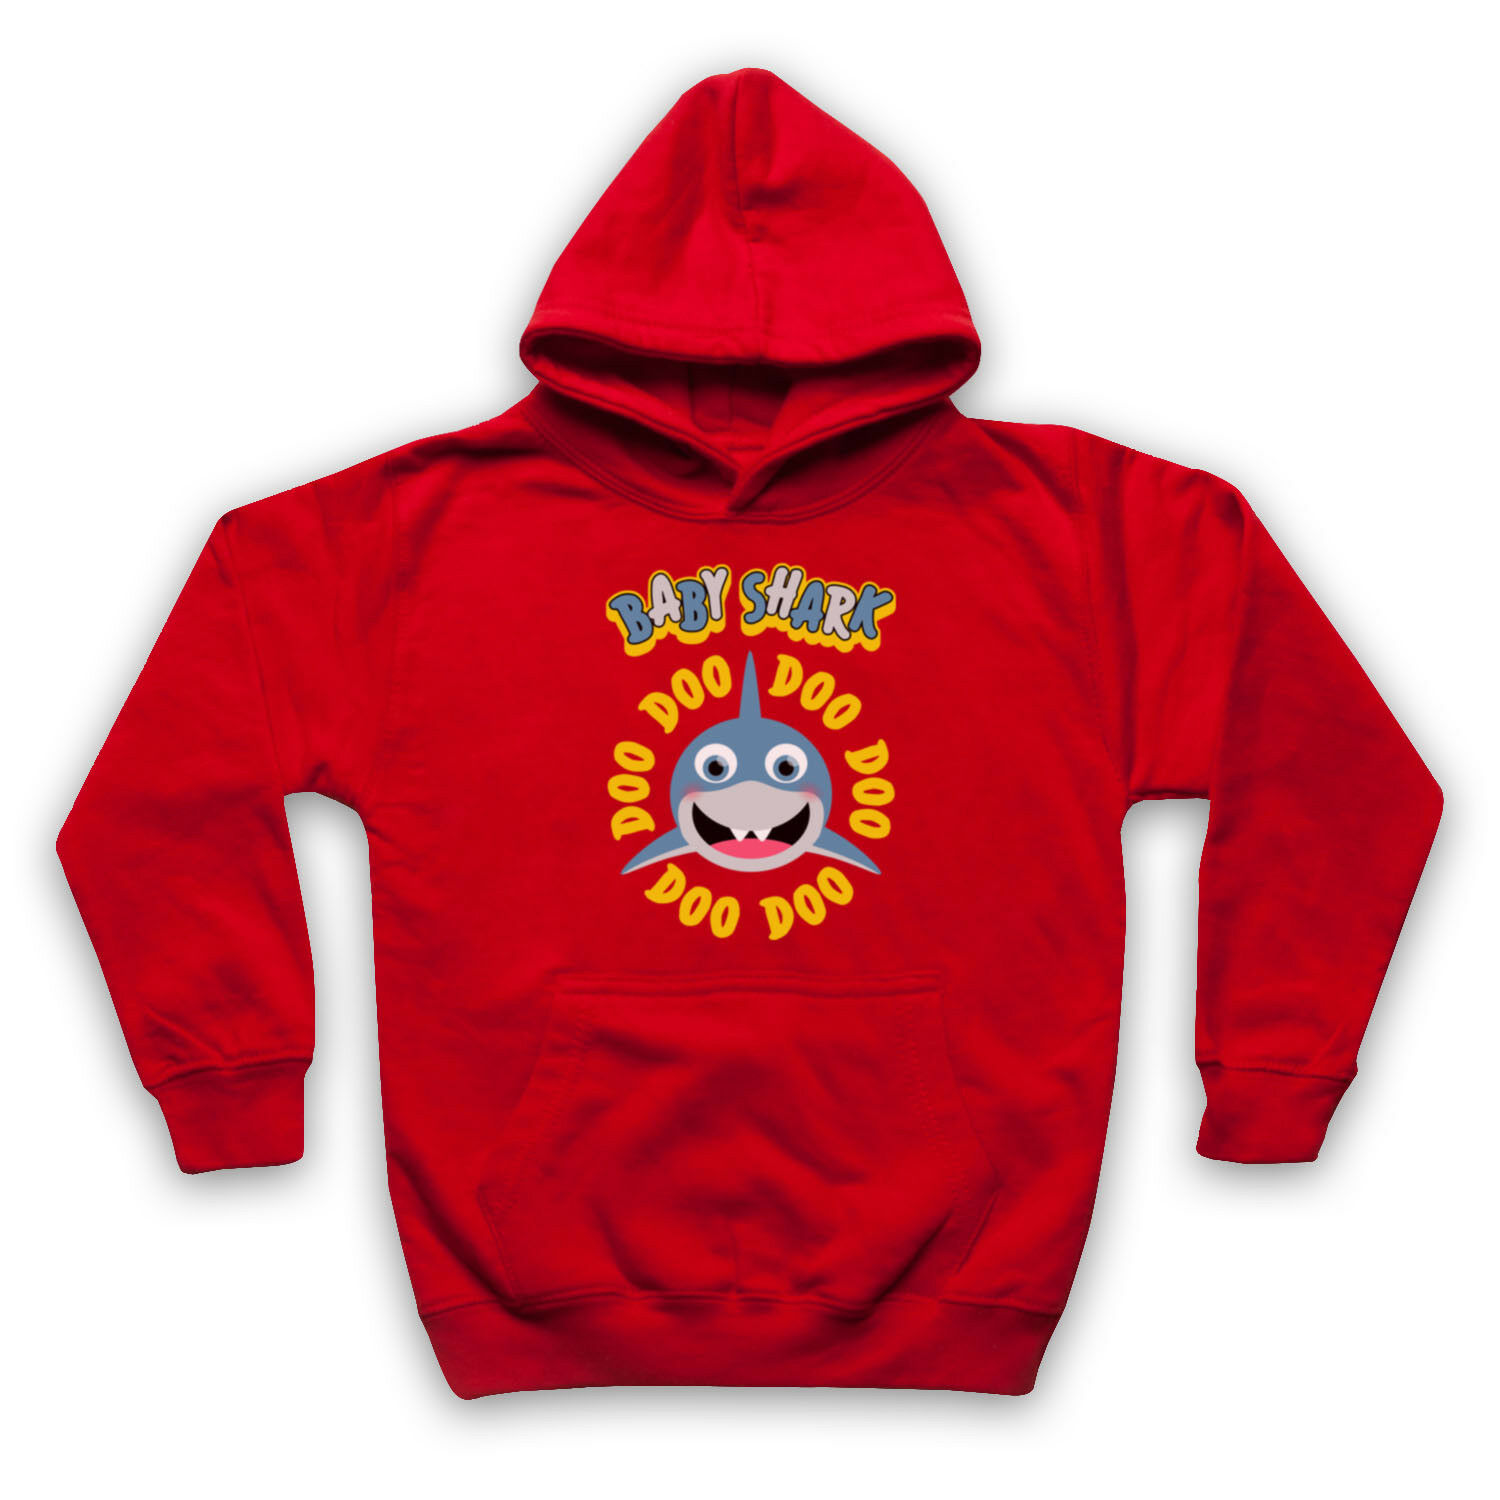 BABY SHARK DOO DOO DOO UNOFFICIAL UNOFFICIAL UNOFFICIAL KIDS SINGALONG SONG ADULTS KIDS HOODIE 28a5df